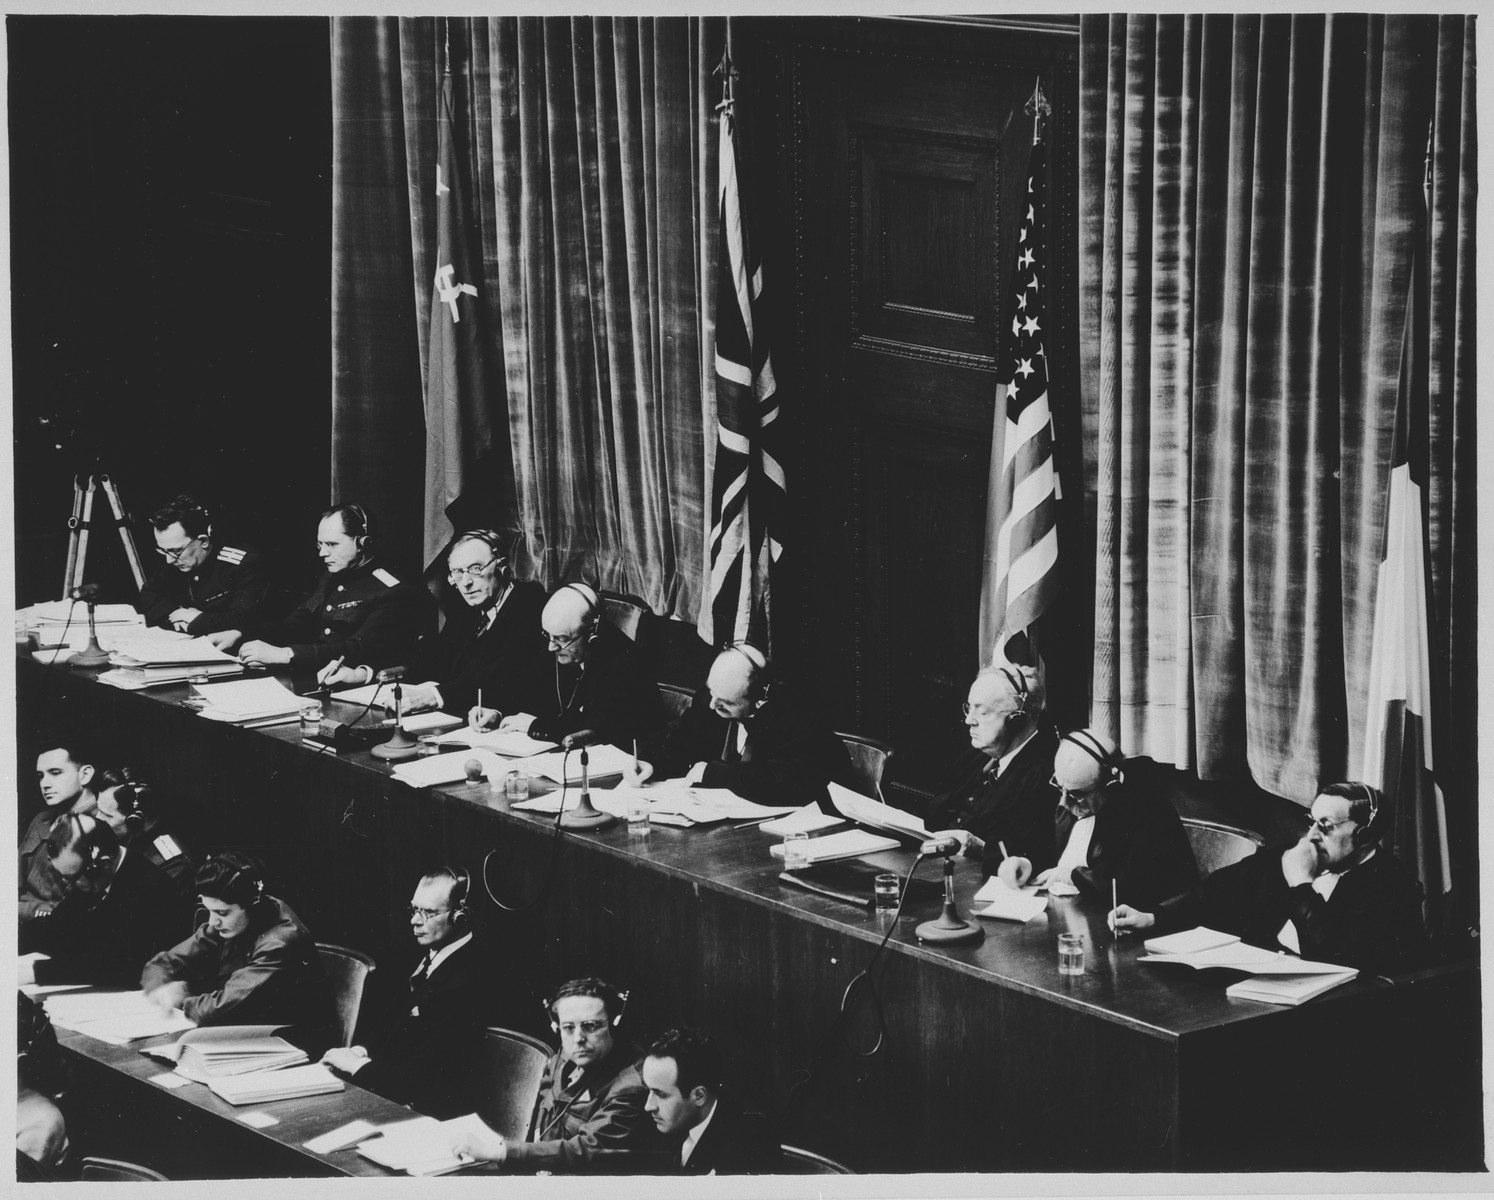 View of the tribunal during a session of the International Military Tribunal trial of war criminals at Nuremberg.  Pictured from left to right are: Alexander Federovich Volchkov, Alternate Soviet Judge; Major General Ion Timofeevich Nikitchenko, Sir Normann Birkett, British judge; Sir Geoffrey Lawrence, British judge; Francis Biddle, US judge; John J. Parker, Alternate US judge; Donnedieu de Varbes, French judge; Robert Falco, Alternate French judge.